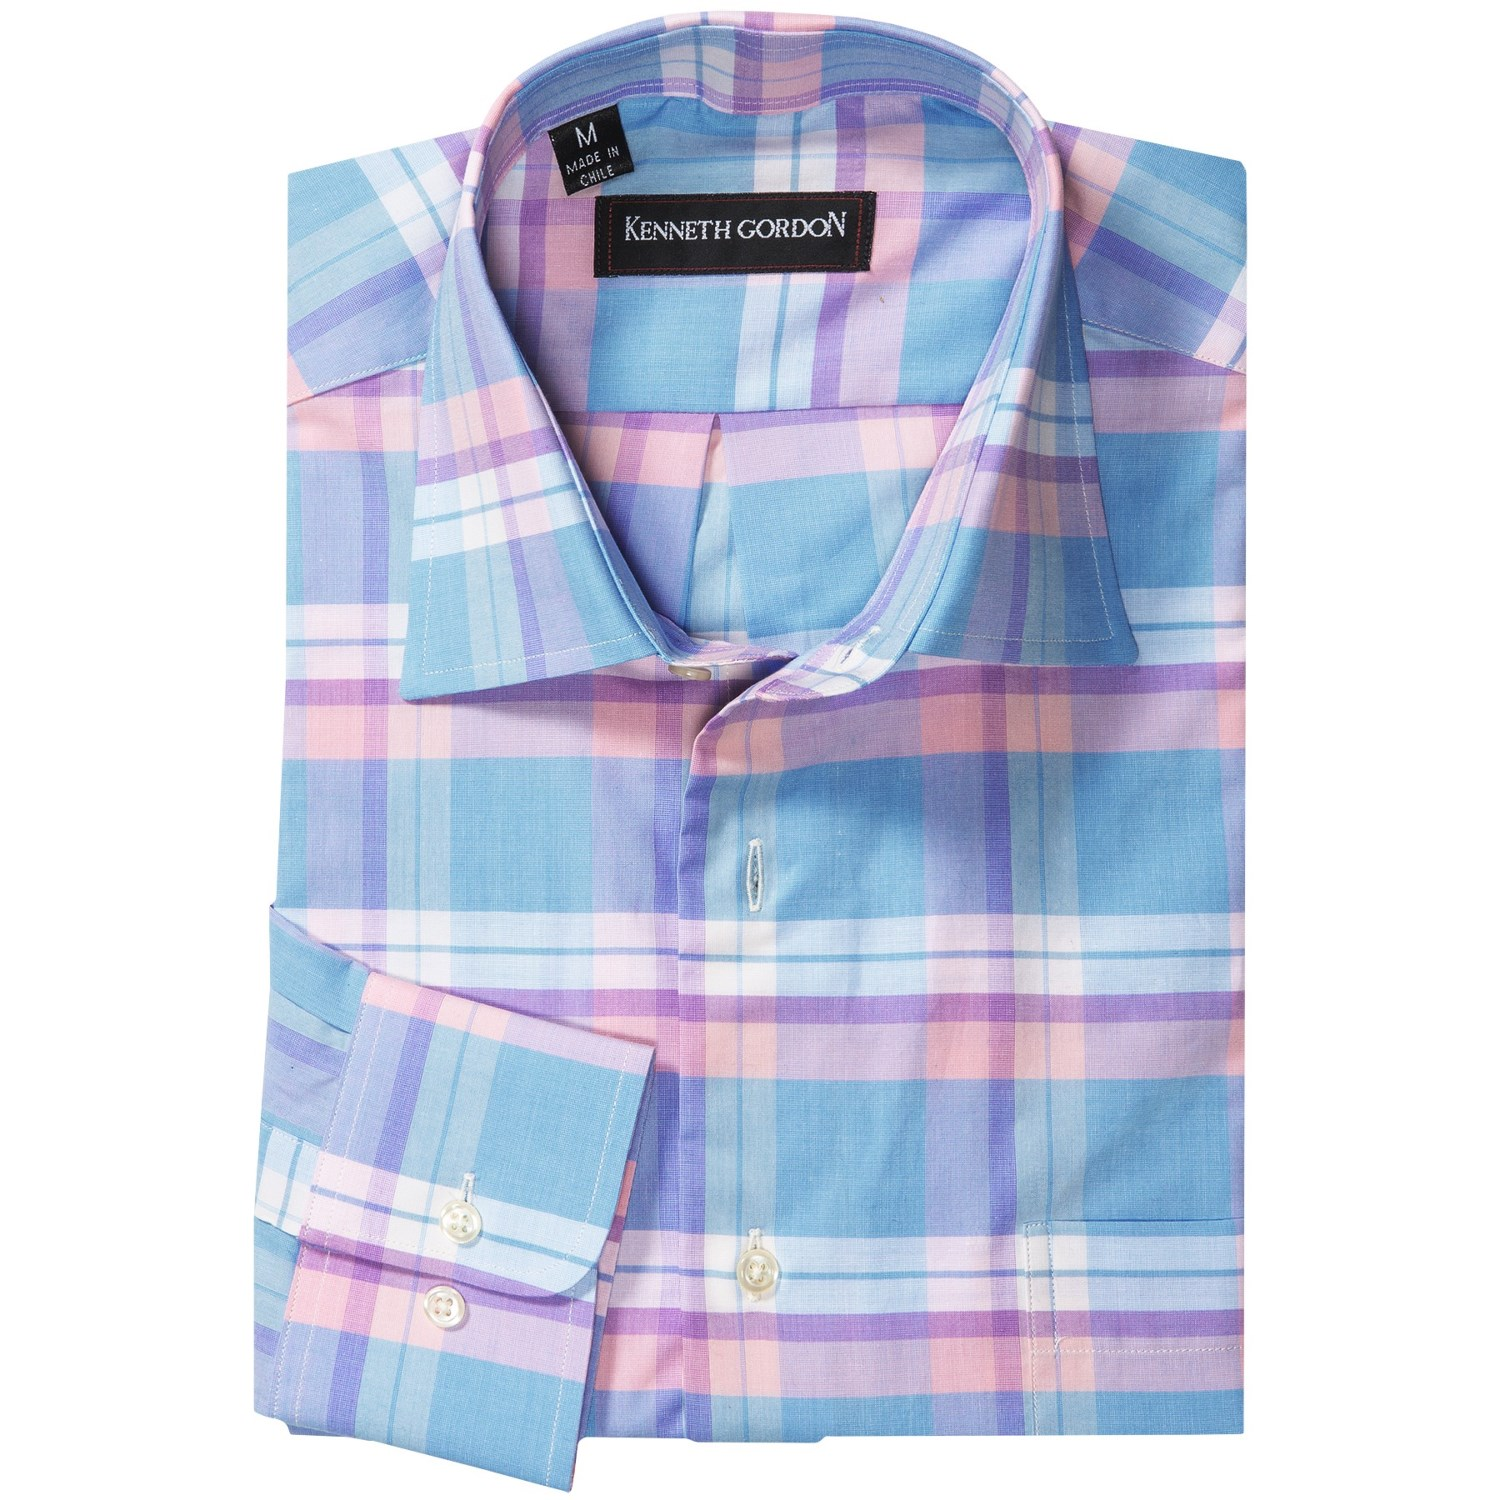 Kenneth Gordon Patterned Dress Shirt For Men Save 85